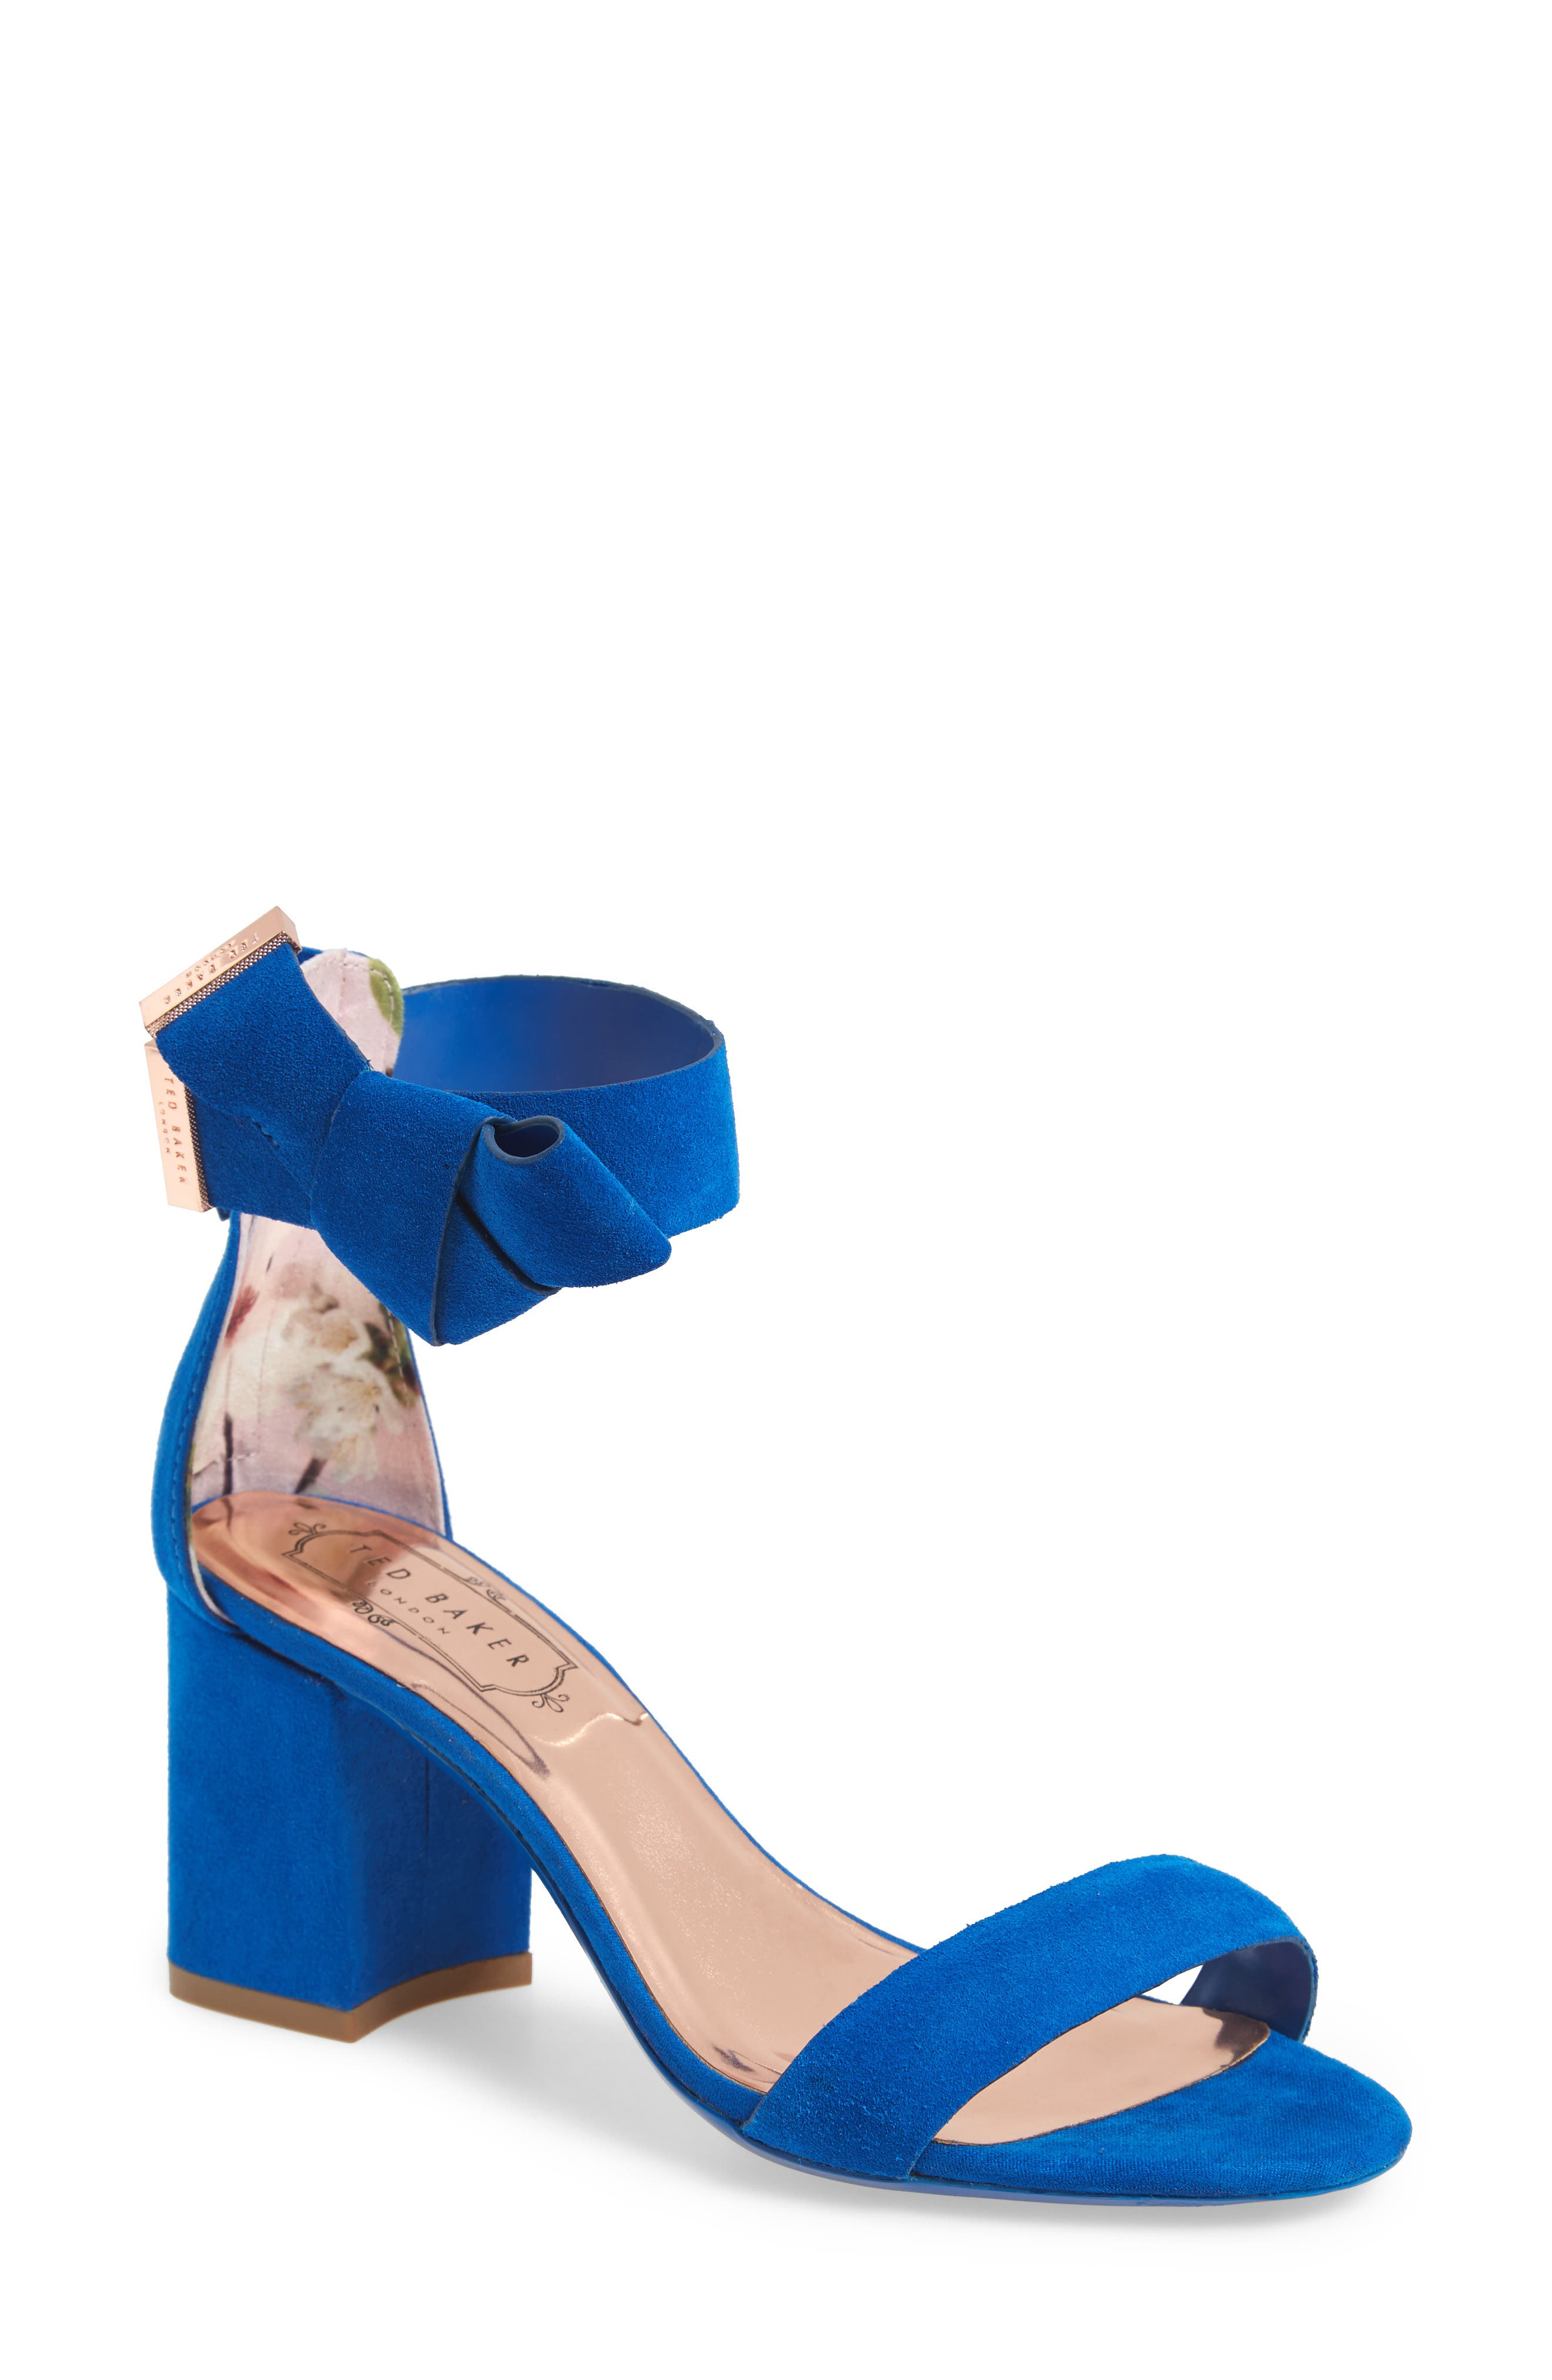 Kerrias Block Heel Sandal,                         Main,                         color, 402